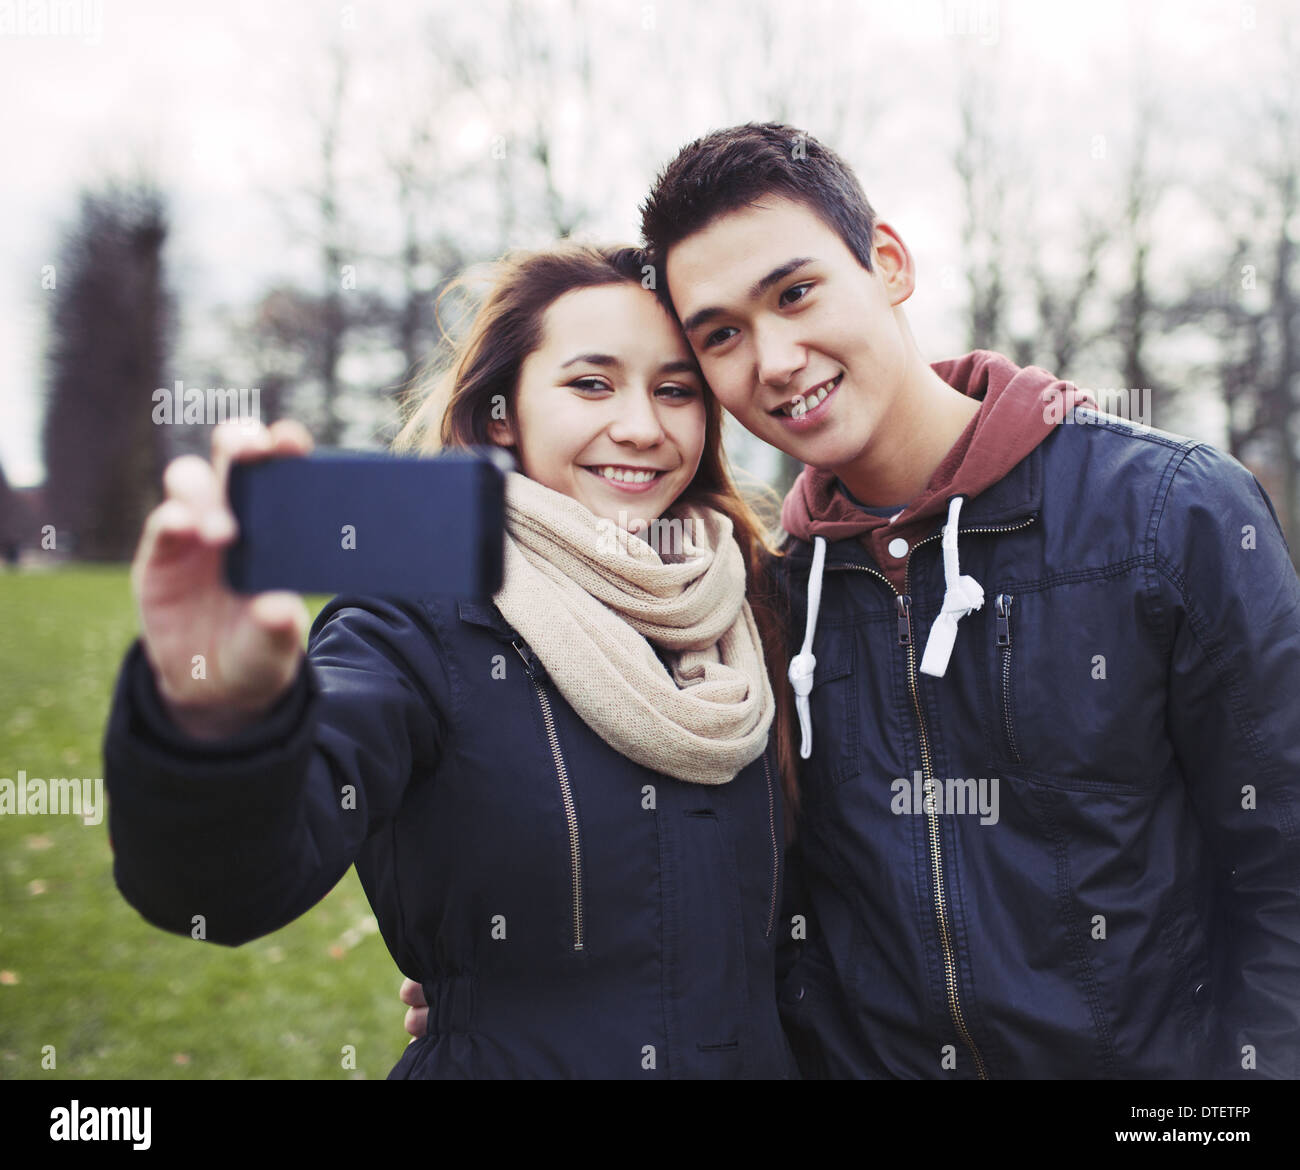 Cute young couple looking happy while taking pictures using a smart phone at the park. Mixed race teenage boy and - Stock Image